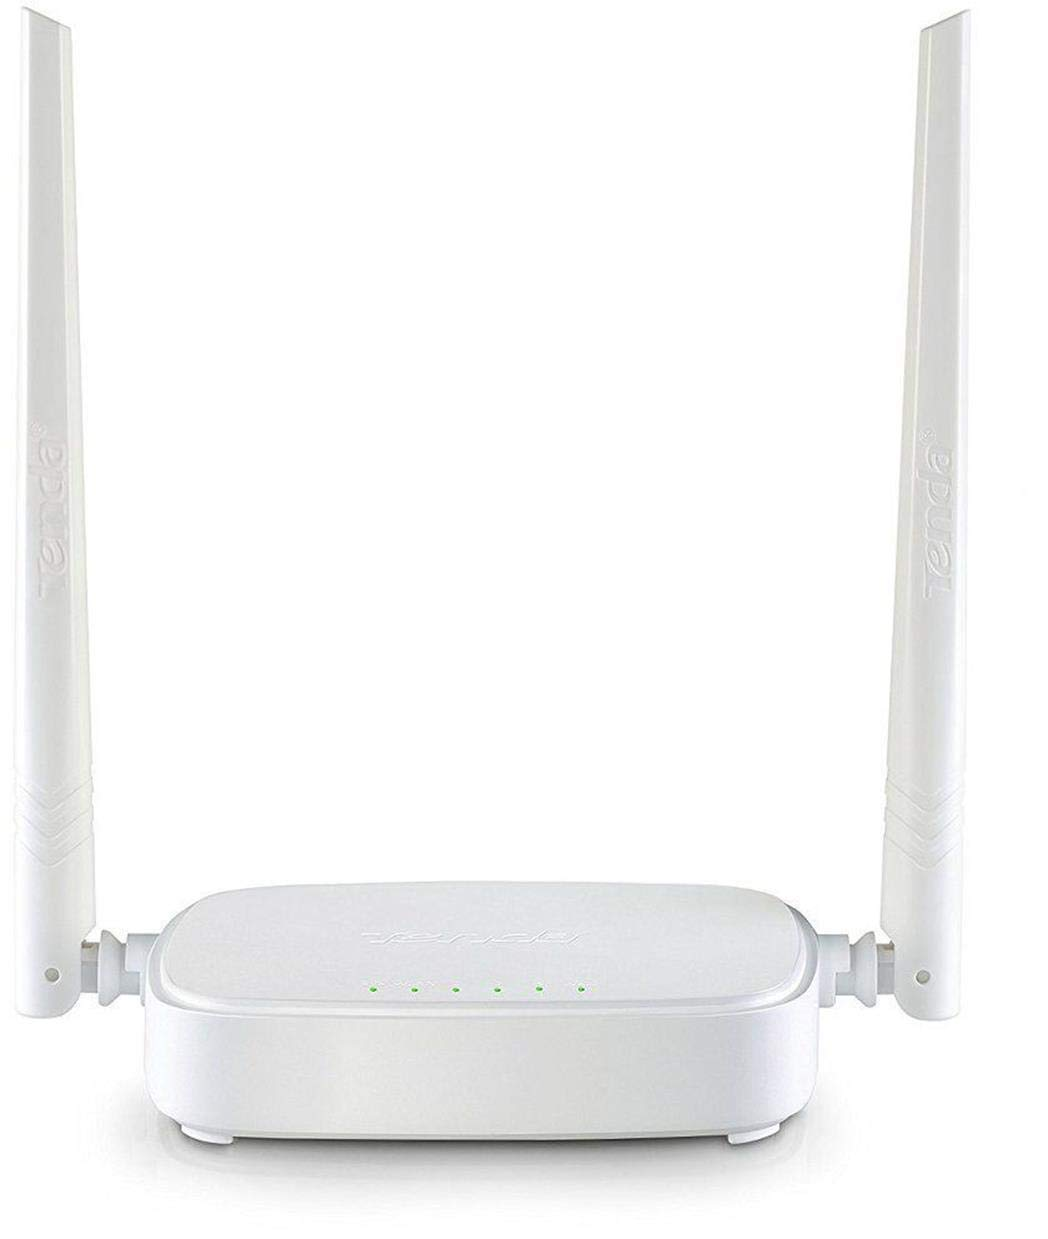 Tenda N301 Wireless-N300 Easy Setup Router (White, Not a Modem) product image